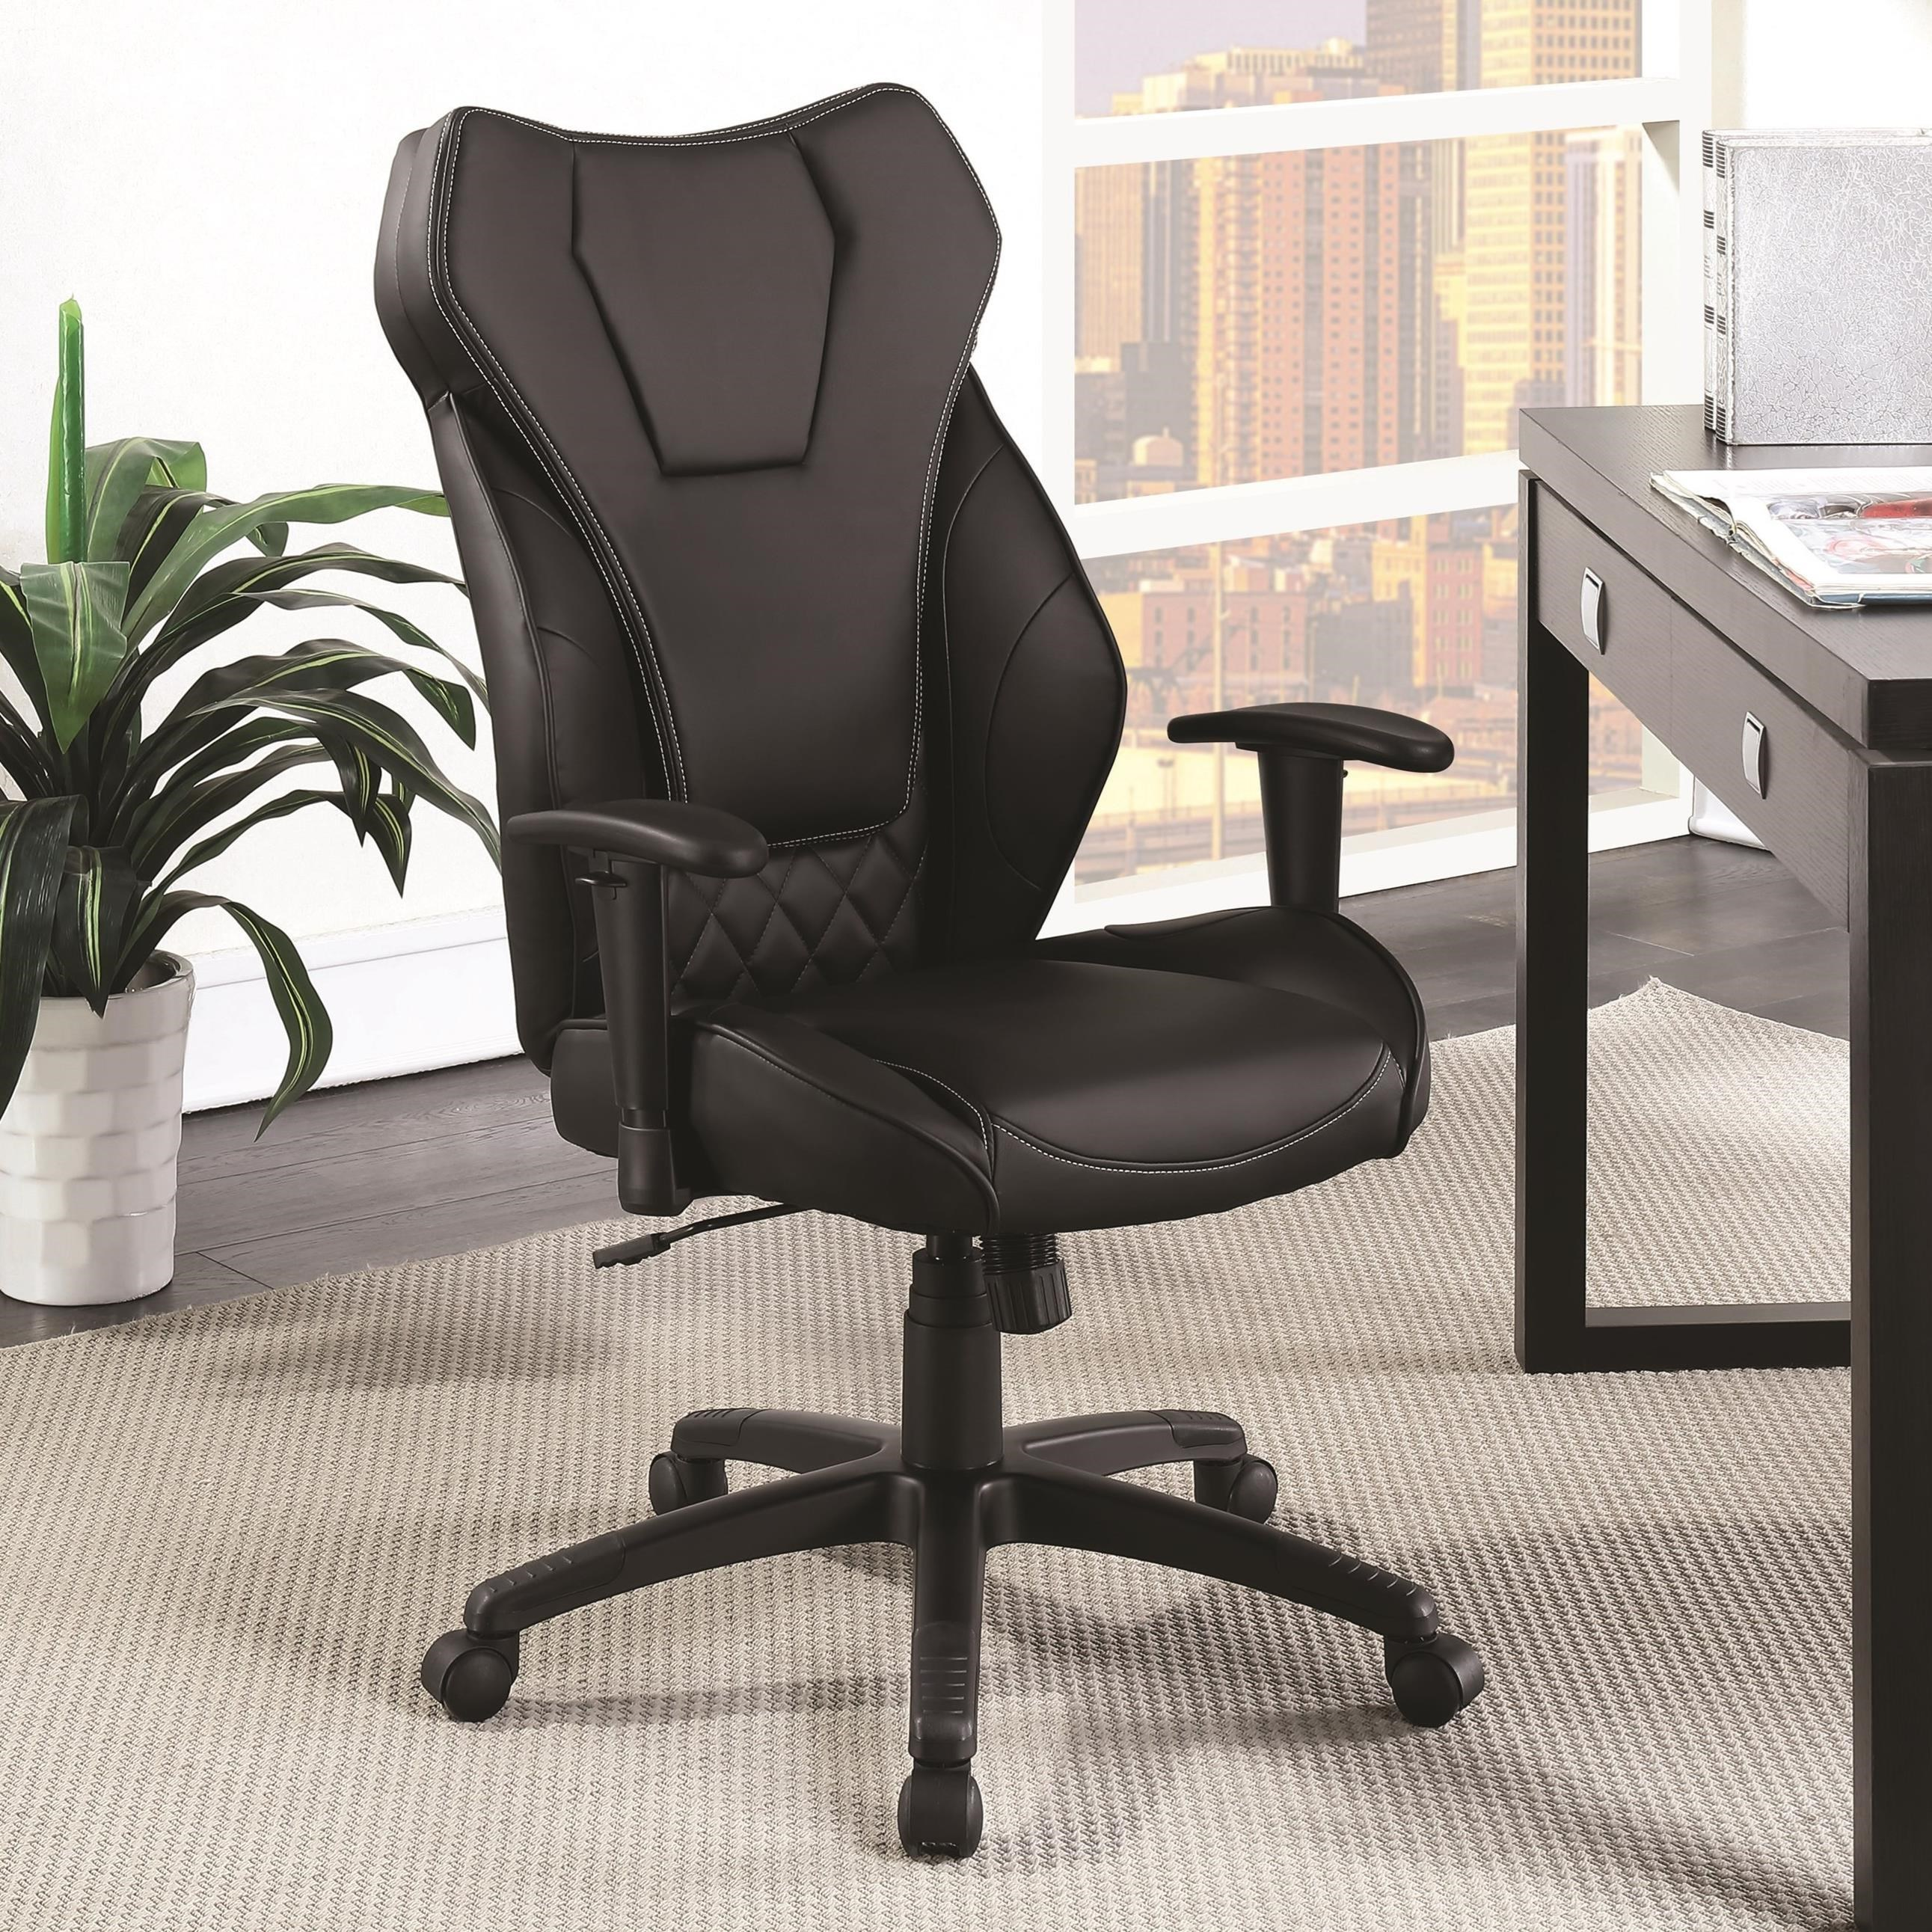 colored office chairs. Coaster Office Chairs Leatherette High Back Chair Colored